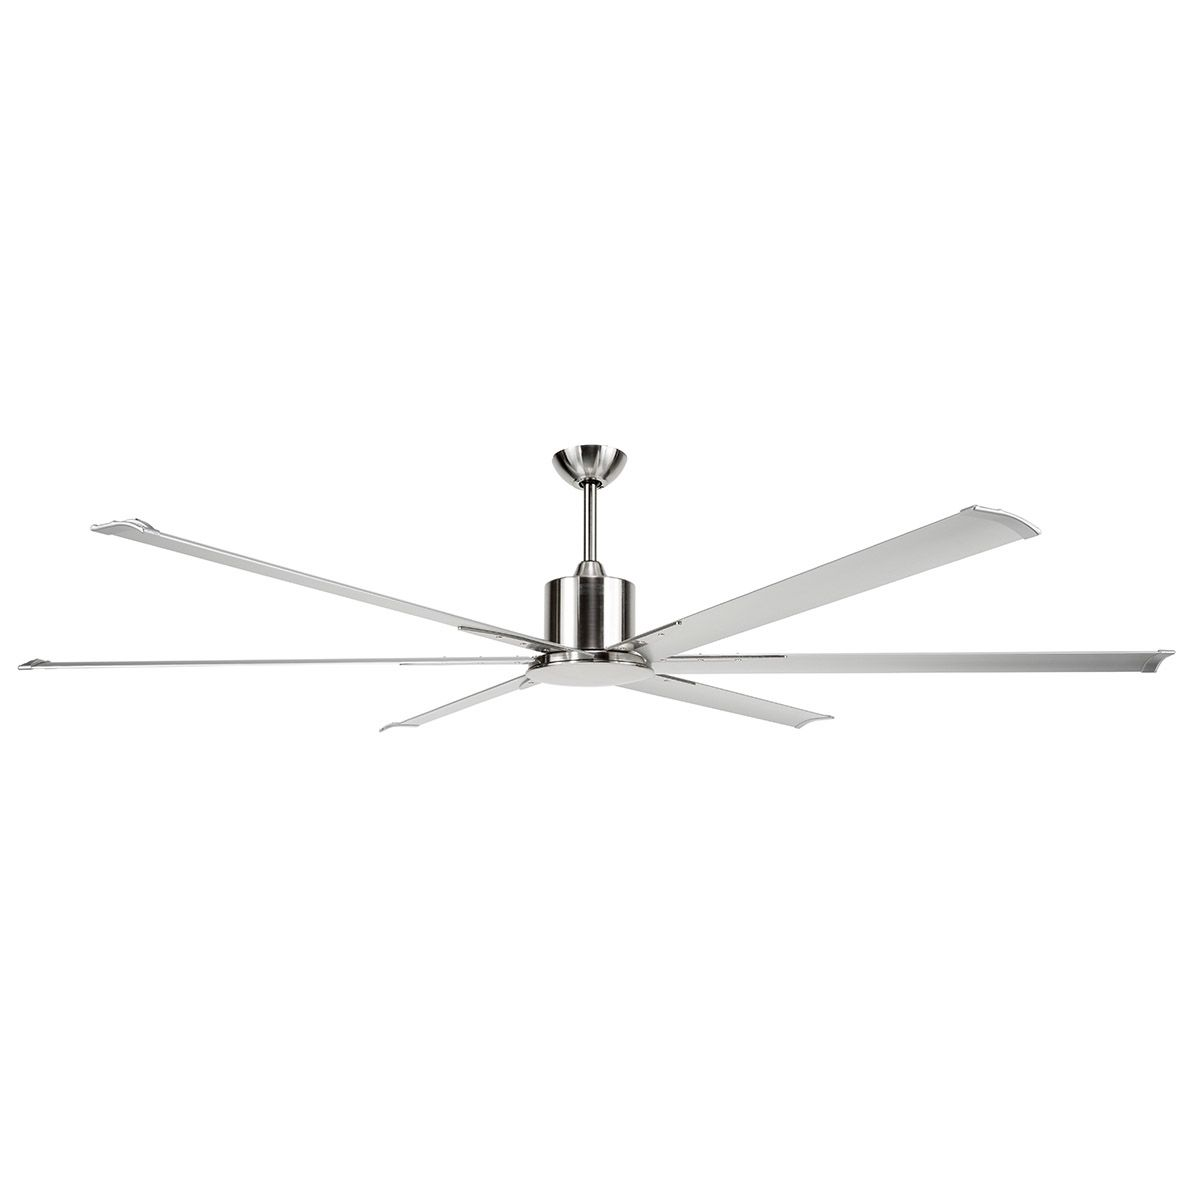 ceiling from by wholesale hansen xlarge ceilings size hero fans and to extra large larger shop